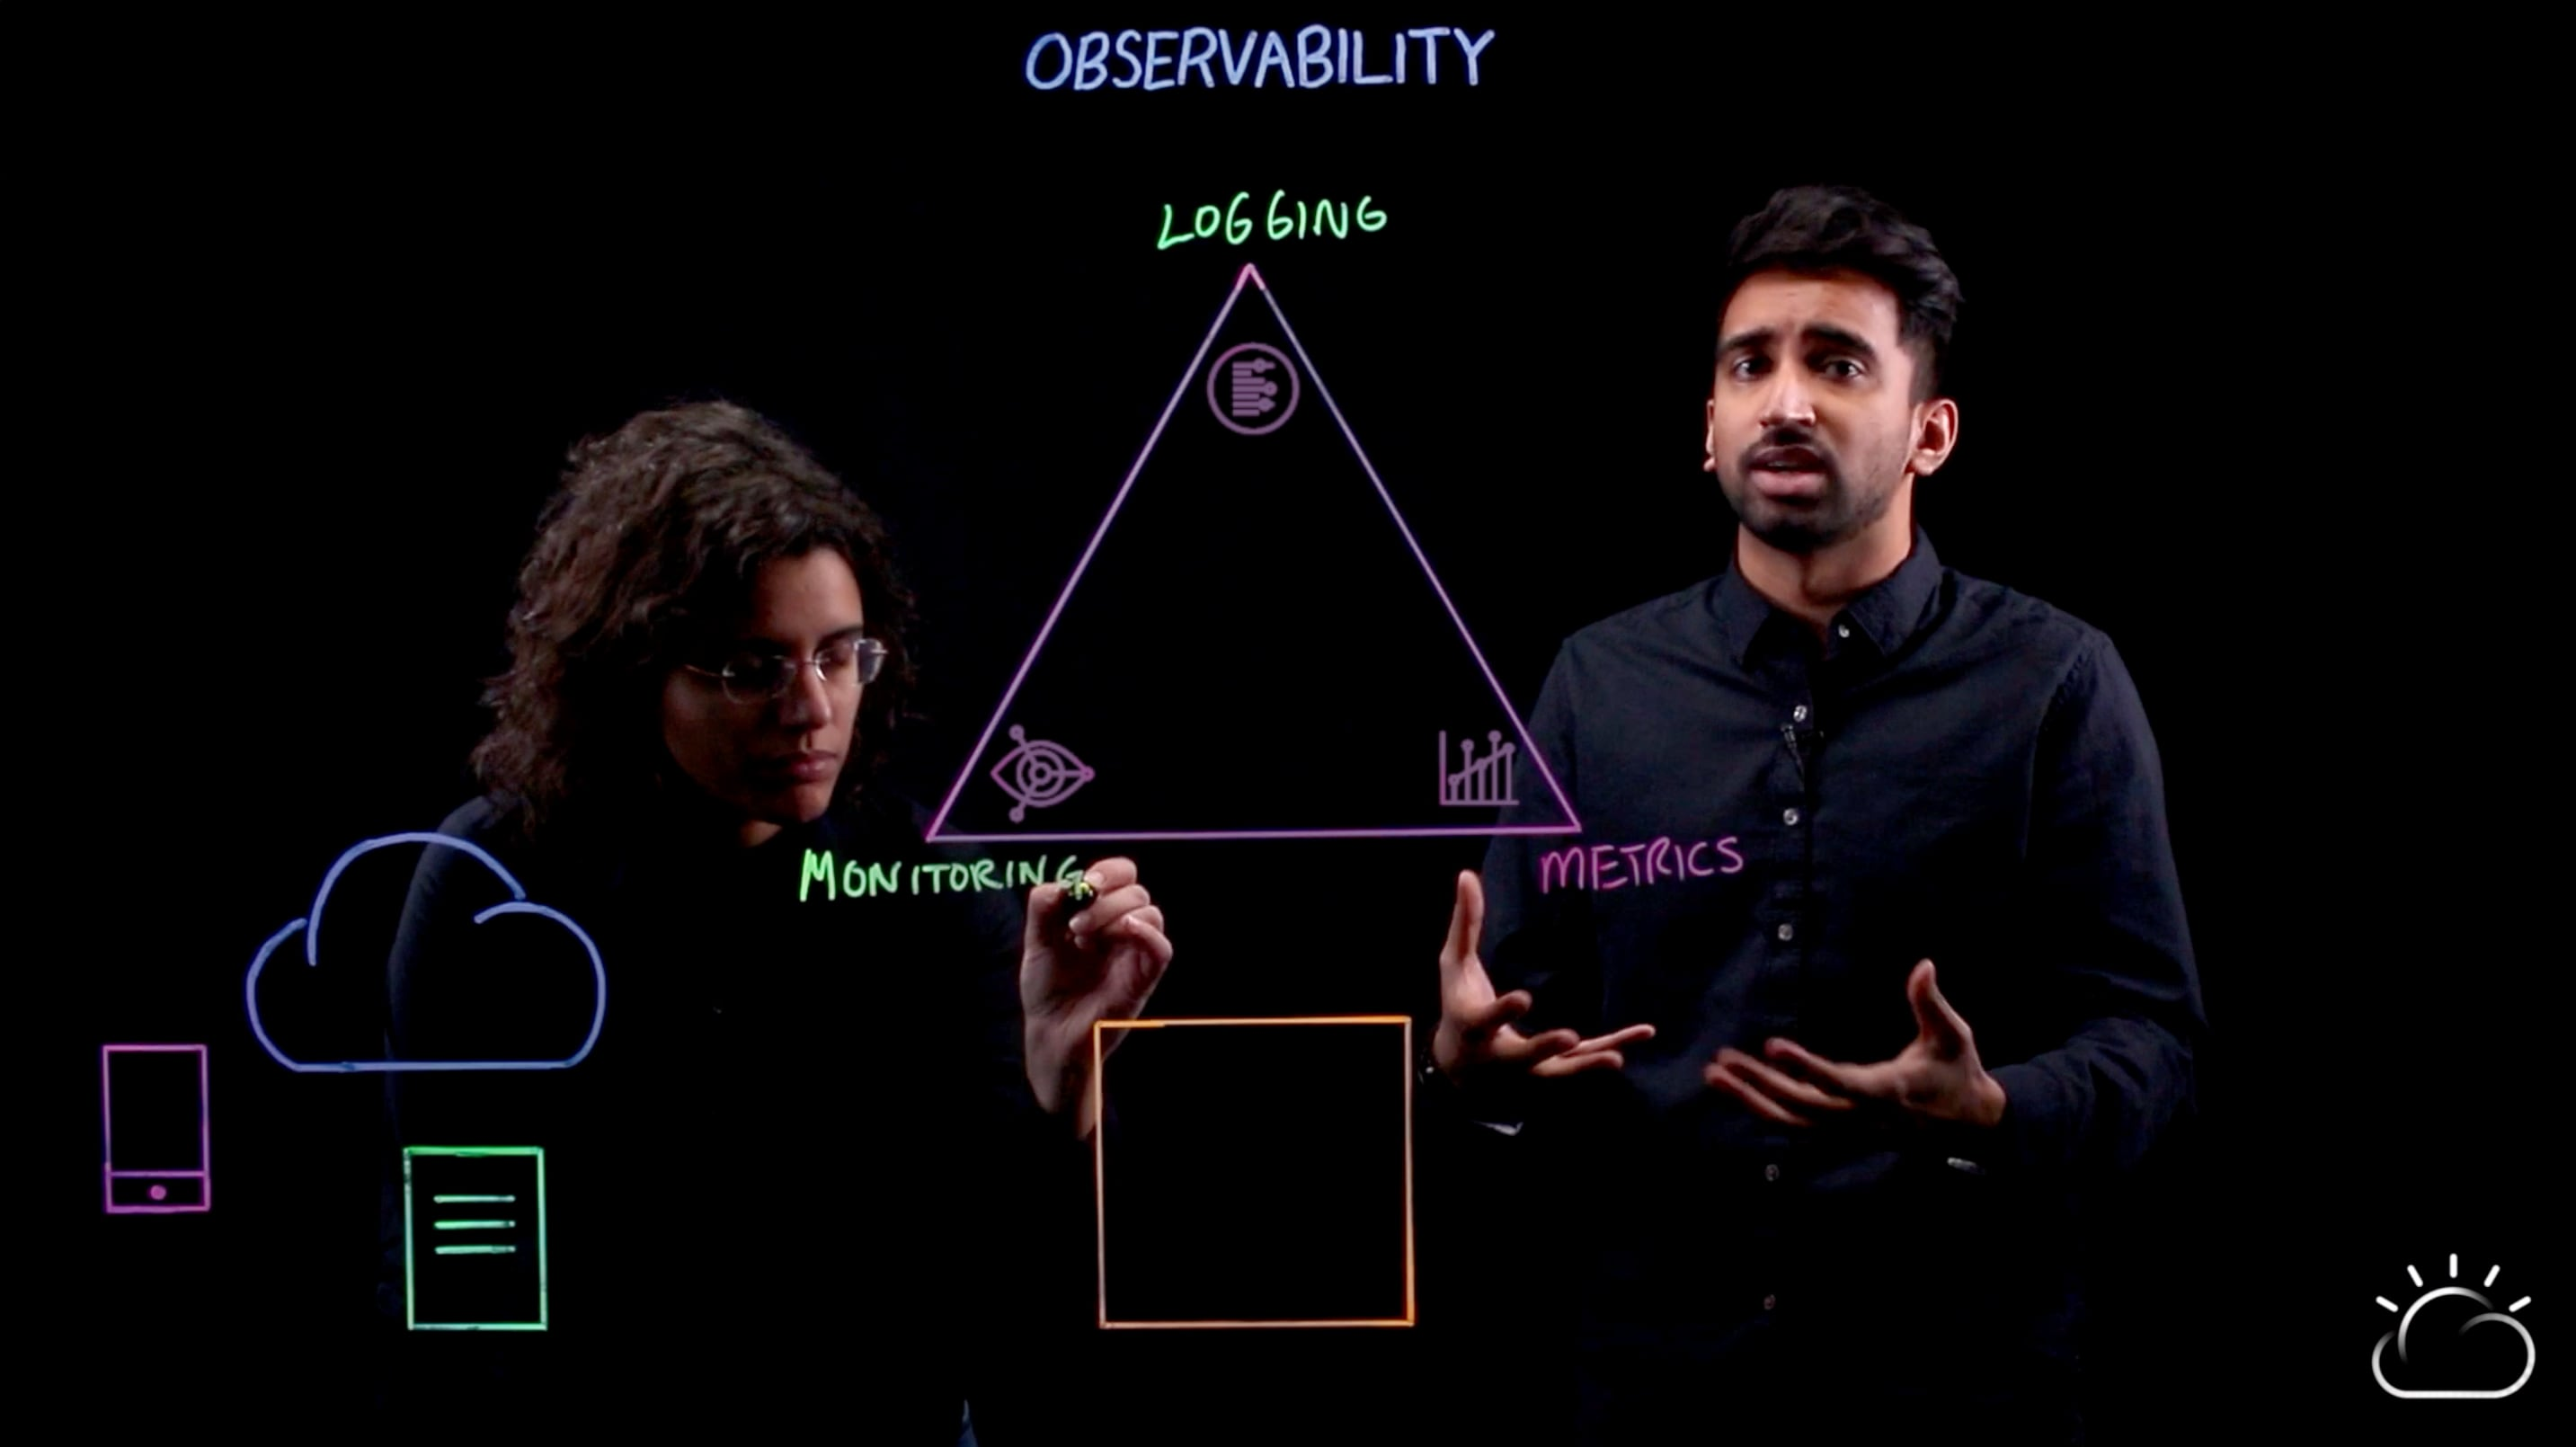 Three tiers of observability